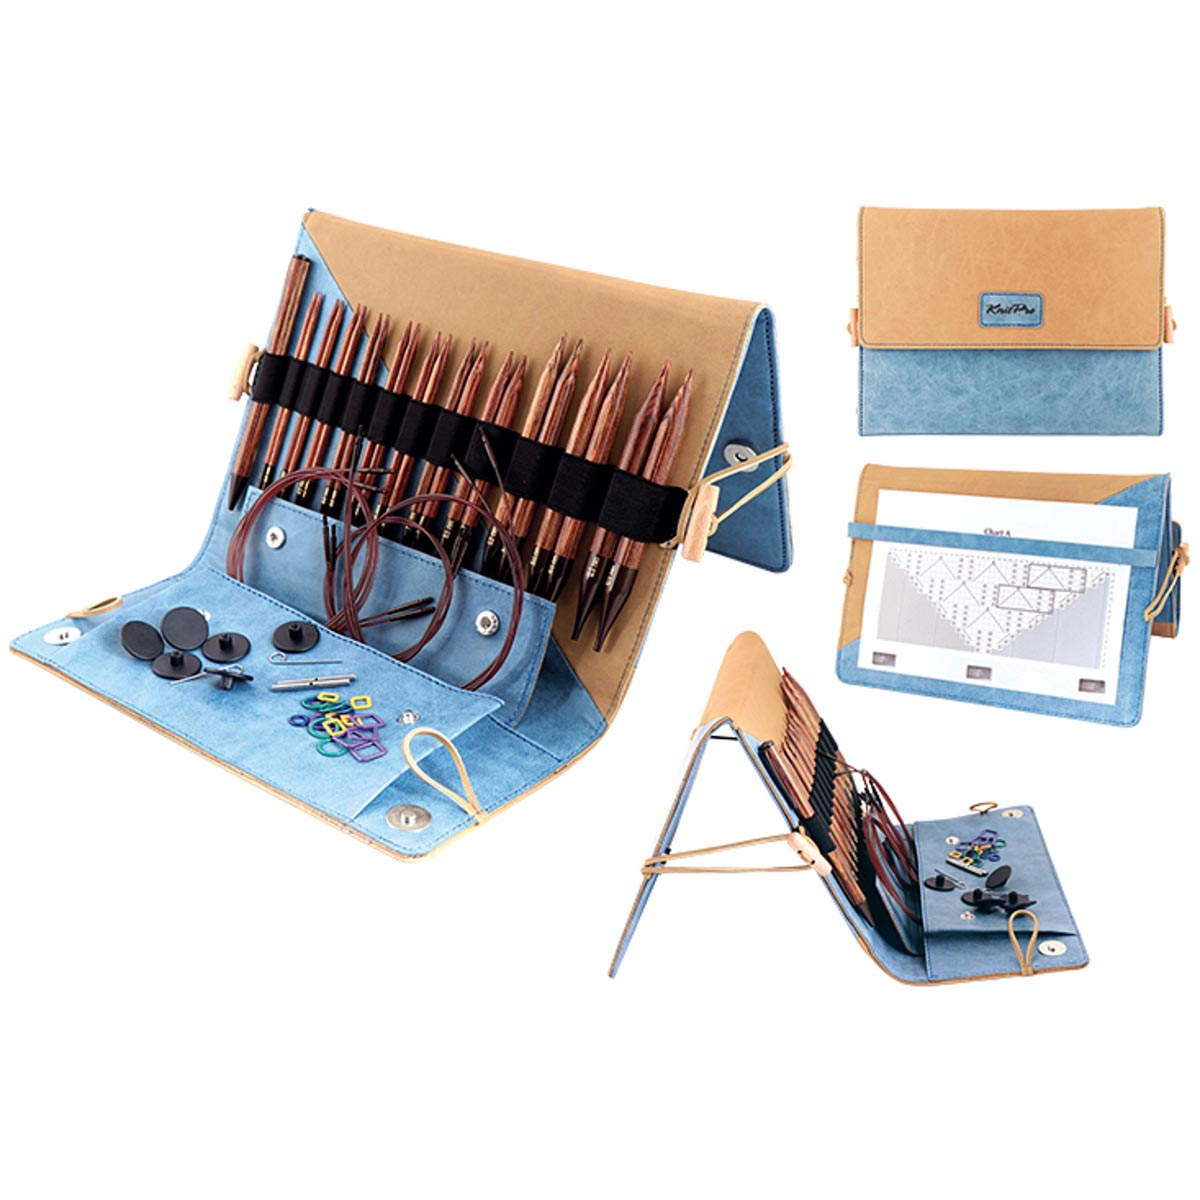 KnitPro (31281) GINGER DELUXE IC Knitting Needle Set of 11 Pairs+Case+Extras